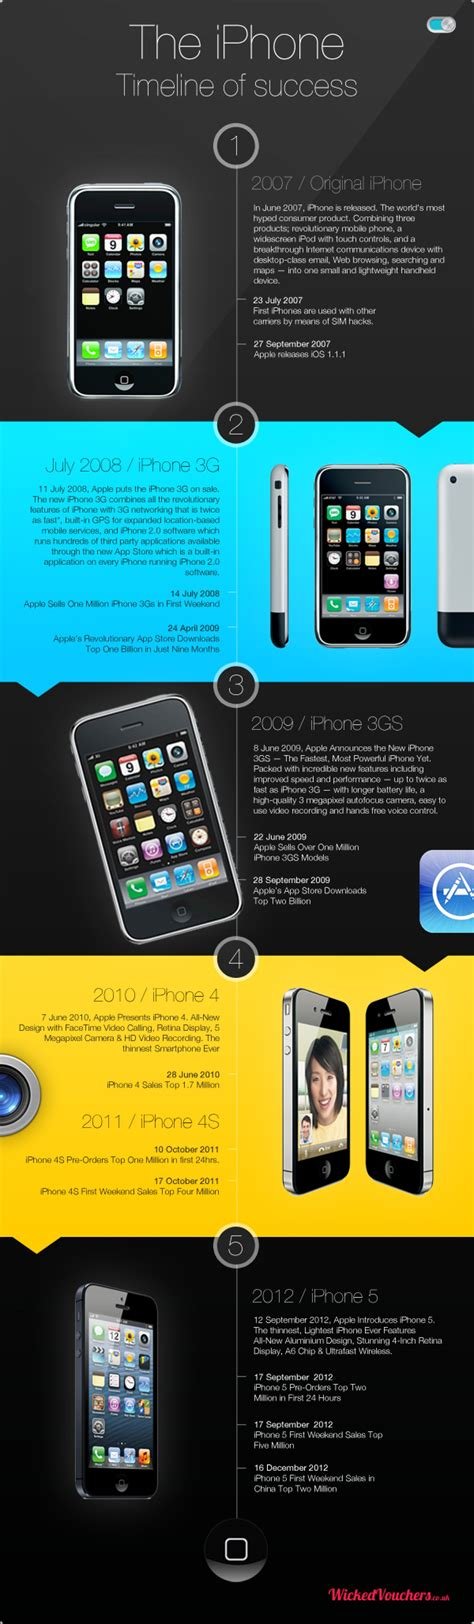 the iphone timeline of success visual ly